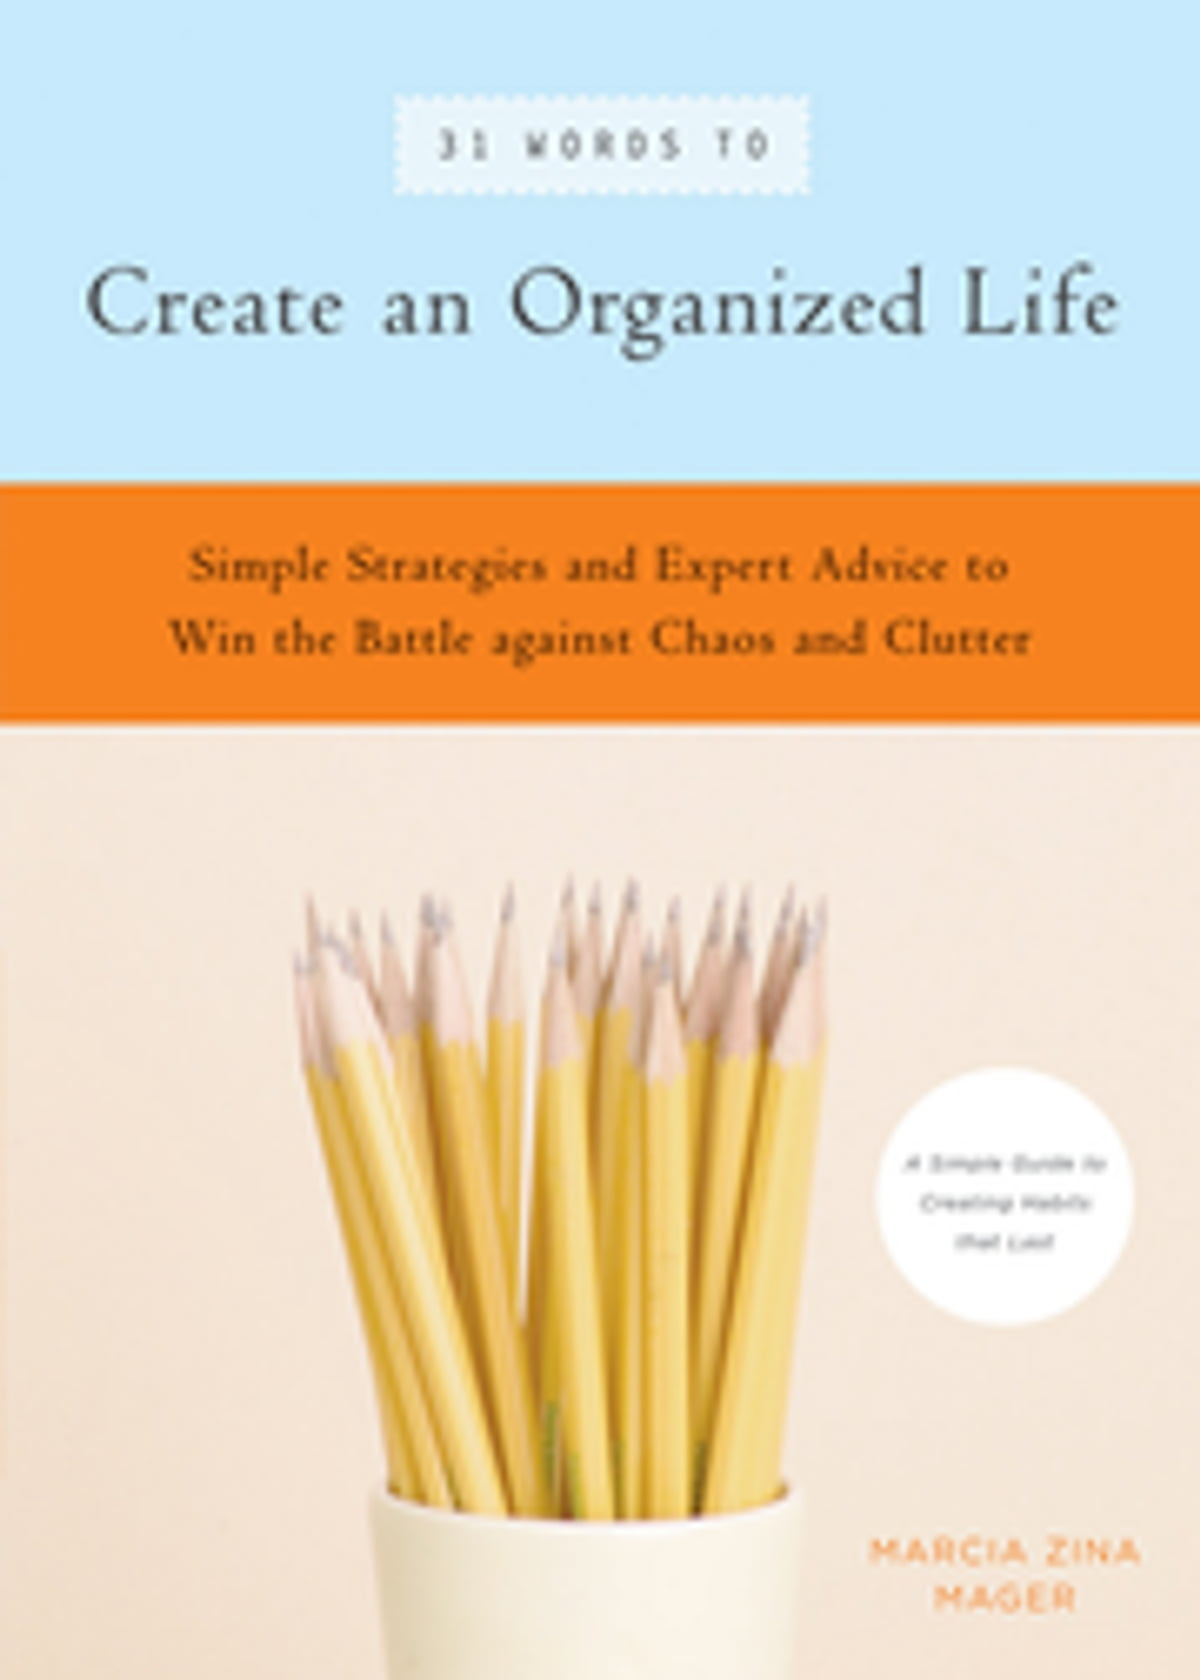 31 words to create an organized life ebook by marcia zina mager 31 words to create an organized life ebook by marcia zina mager 9781577313991 rakuten kobo fandeluxe PDF